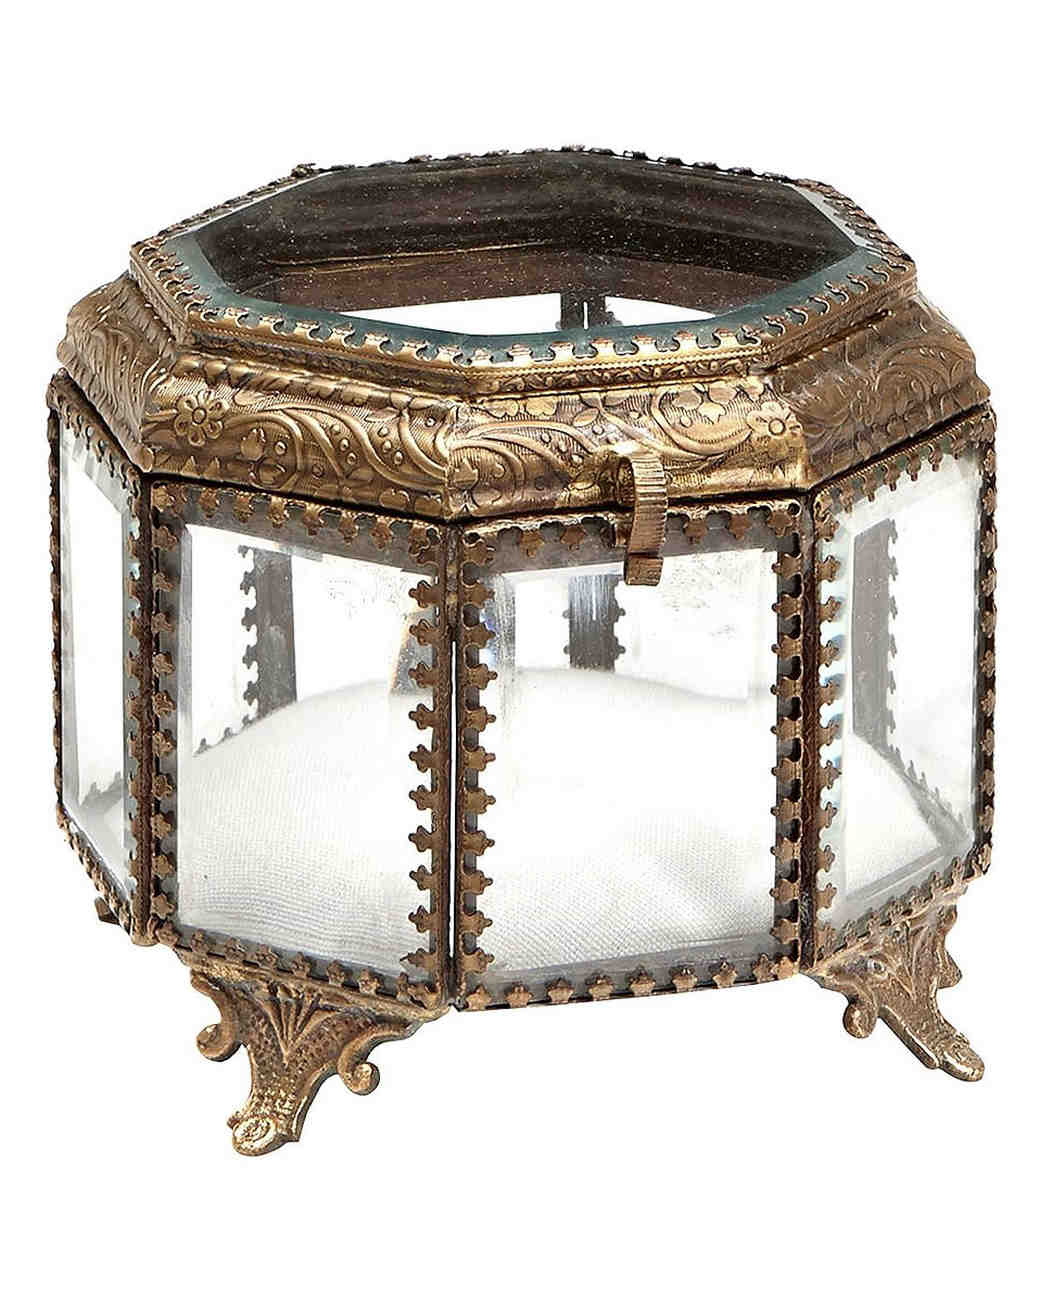 unique-ring-box-glass-and-gold-box-0316.jpg